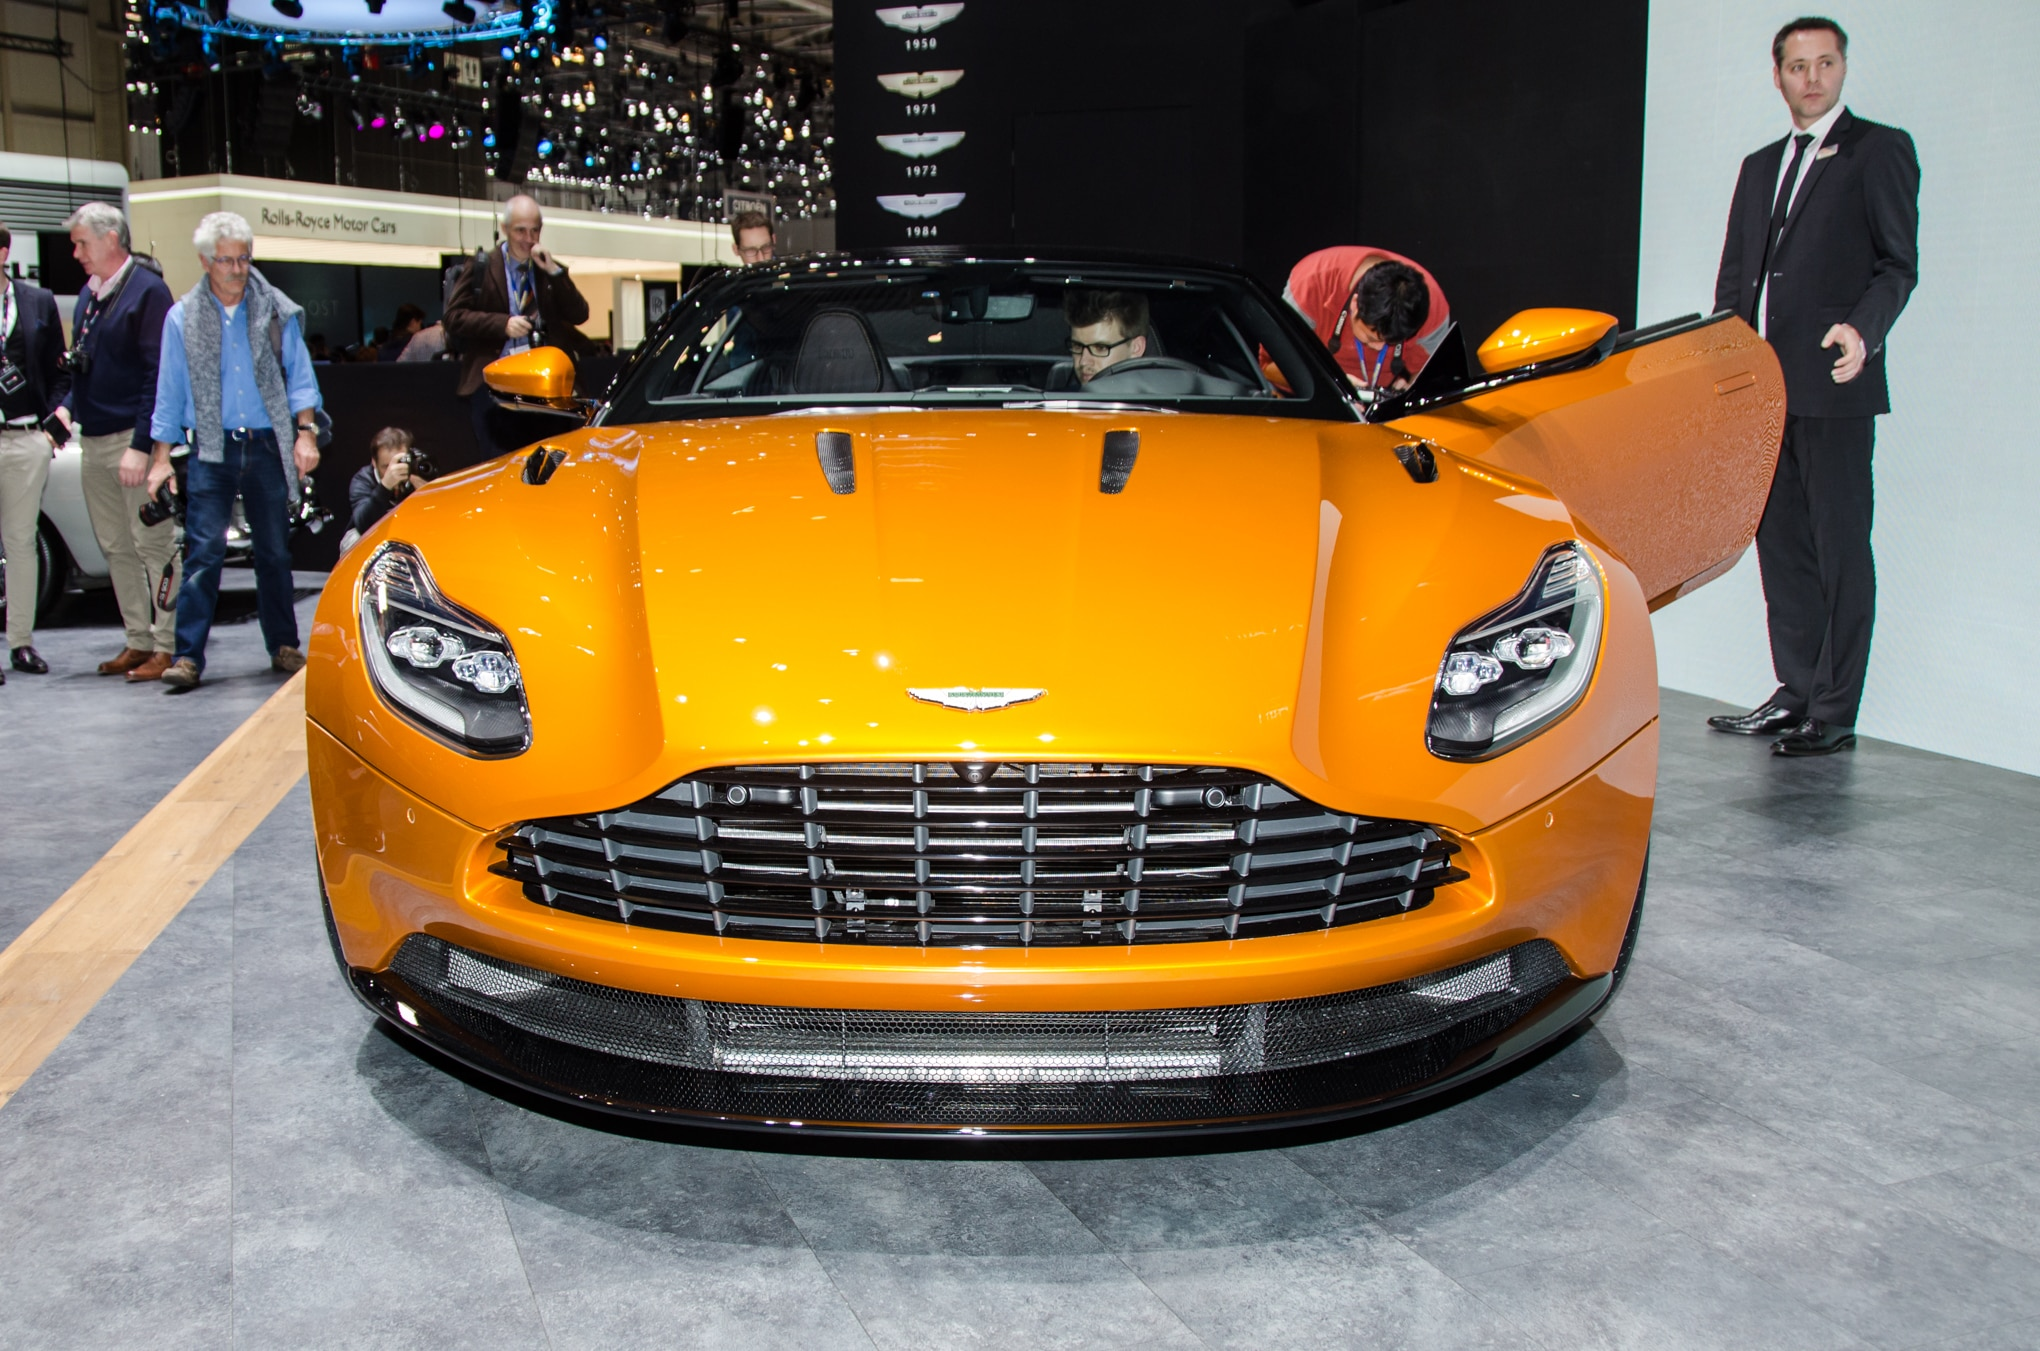 Aston Martin Db11 Front End Possibly Revealed In New Leak - Megan stewart